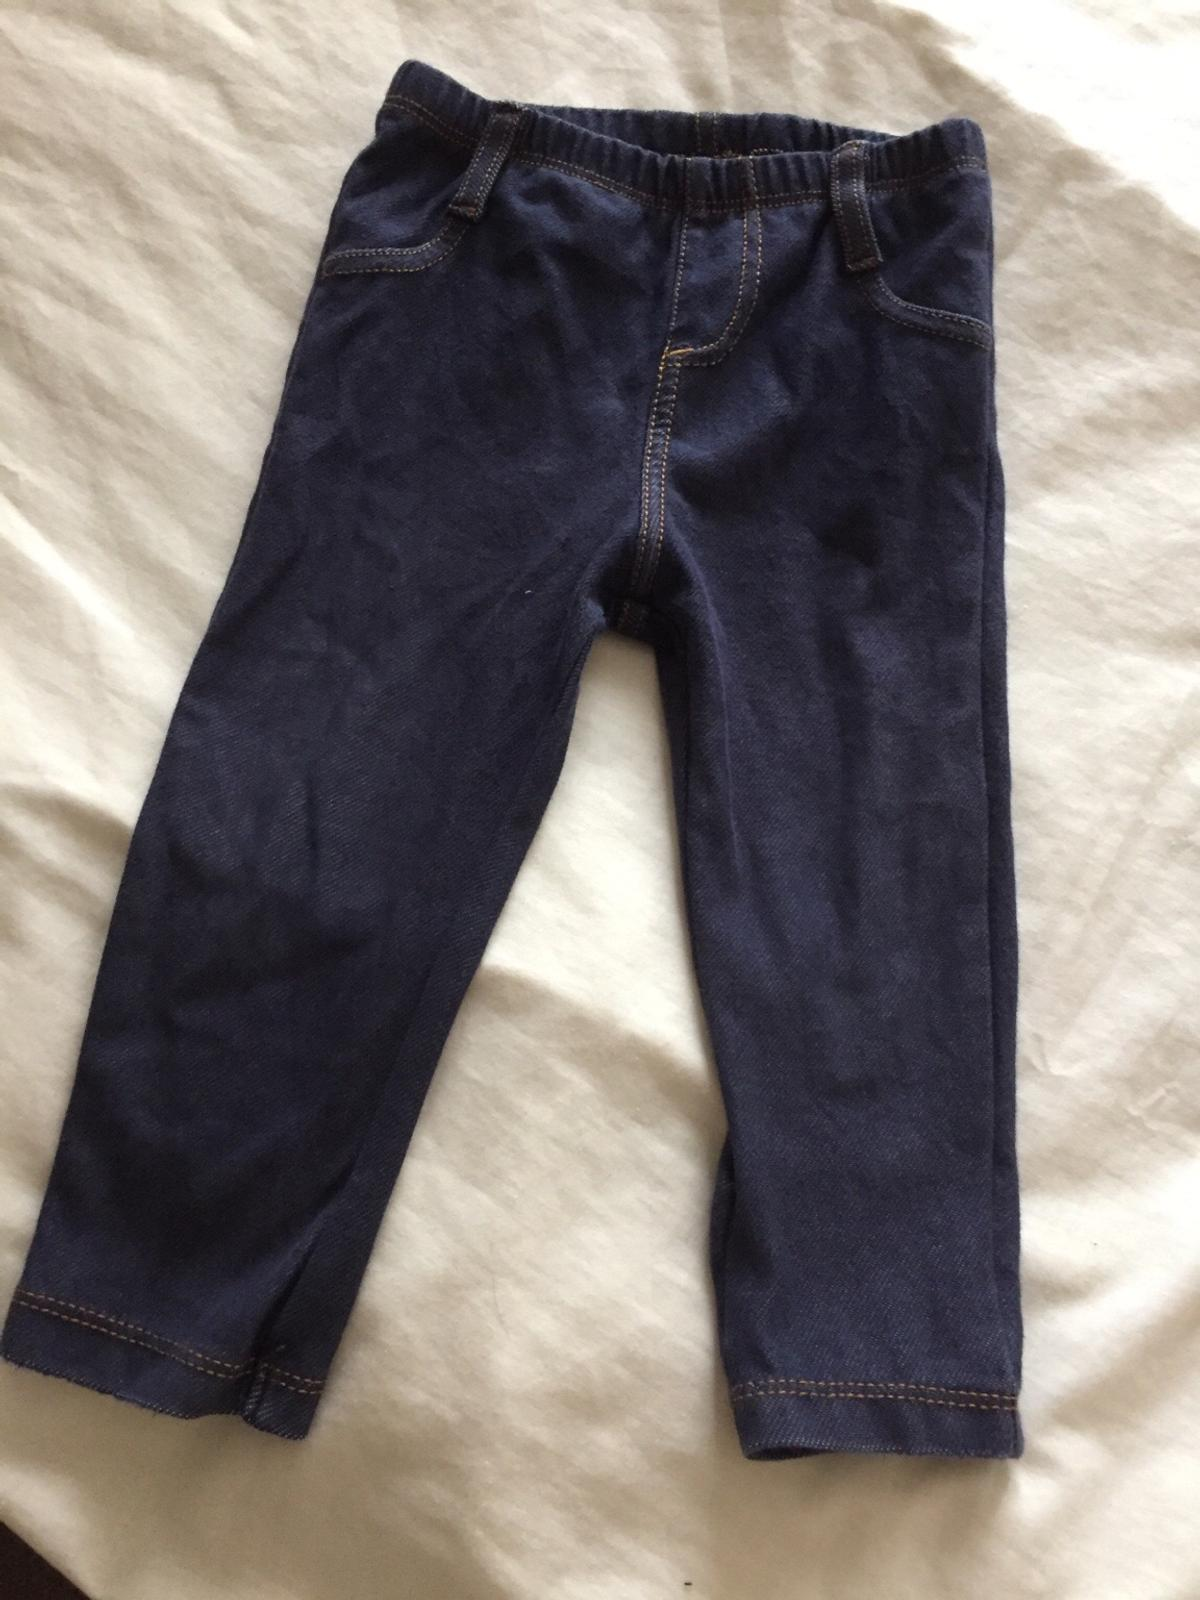 how to serch new concept outlet boutique Next baby girls jeggings